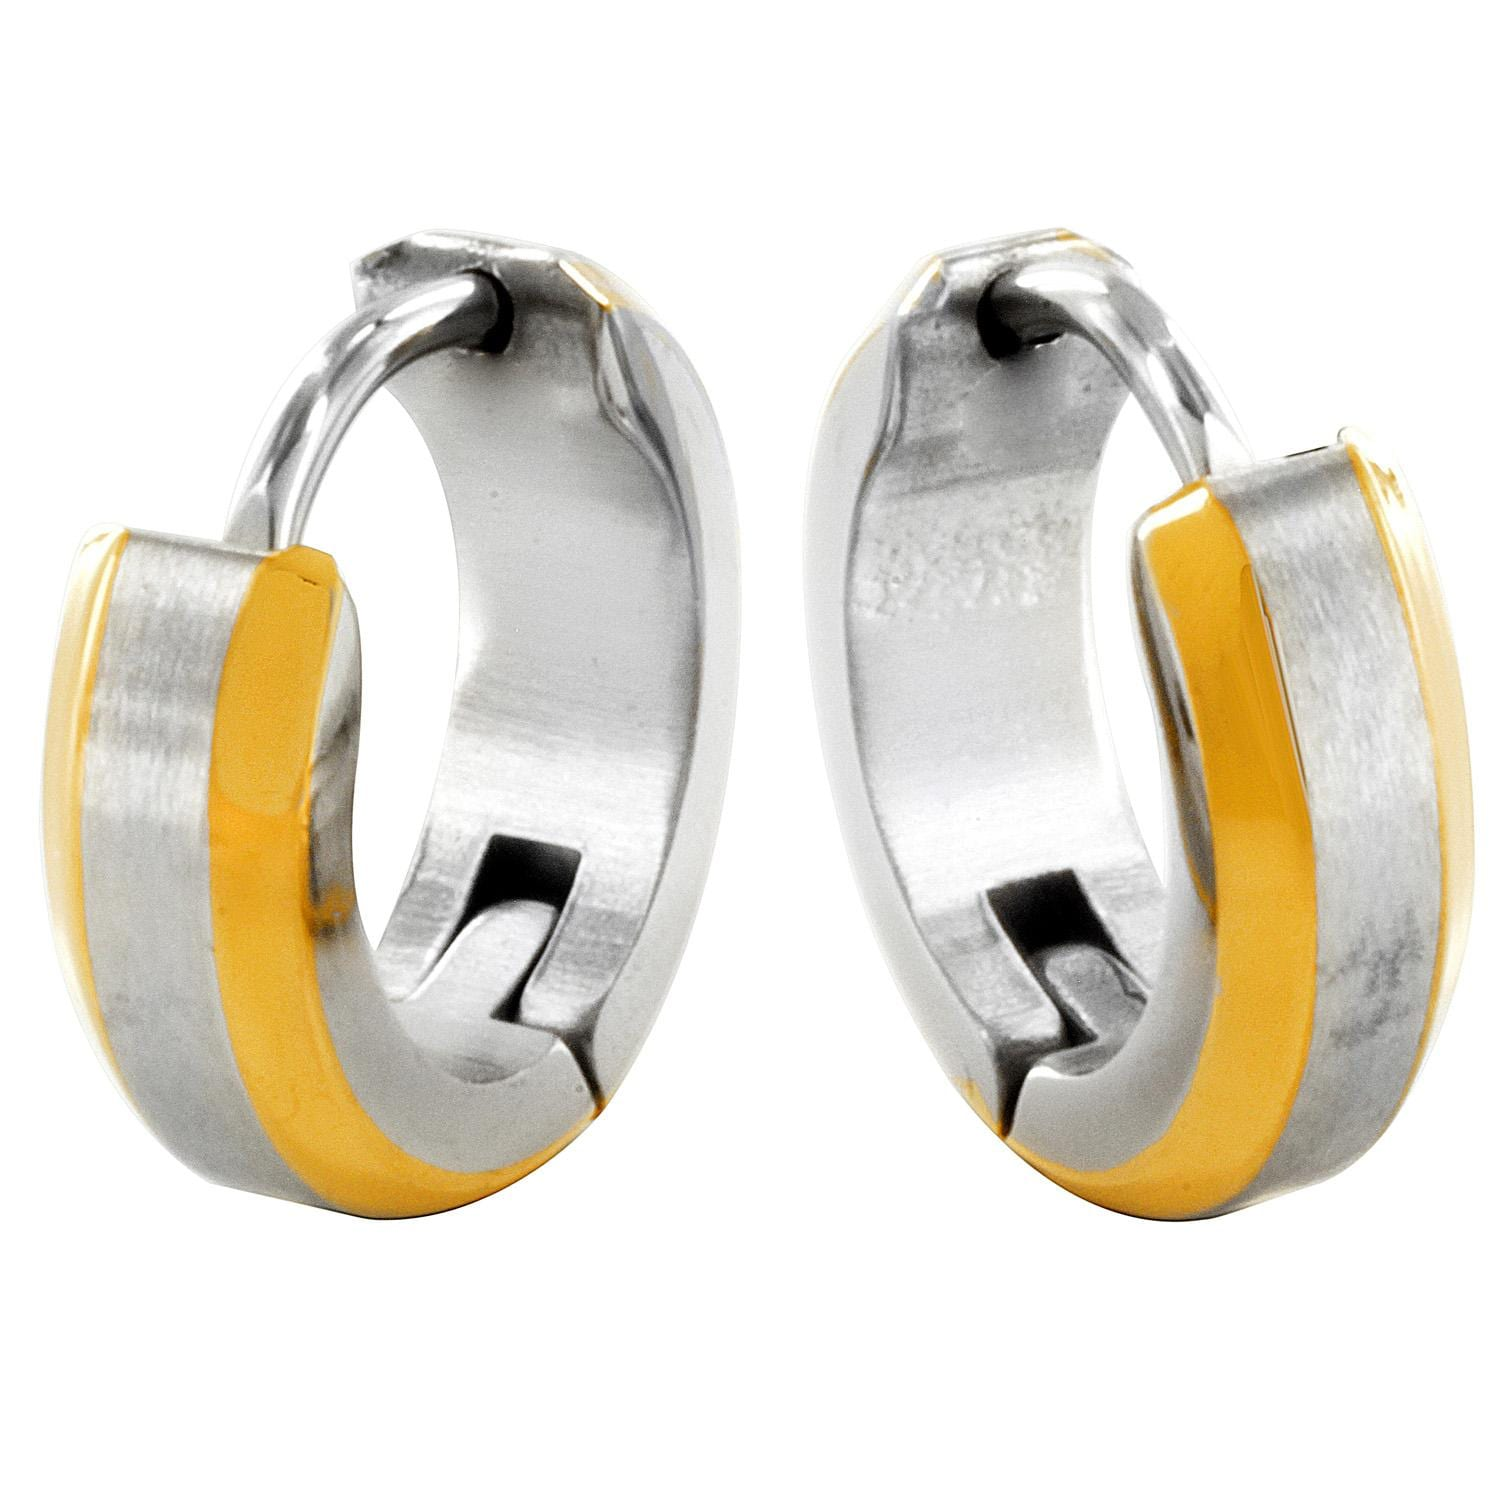 Stainless Steel Hoop Earring with Gold Plated Edges